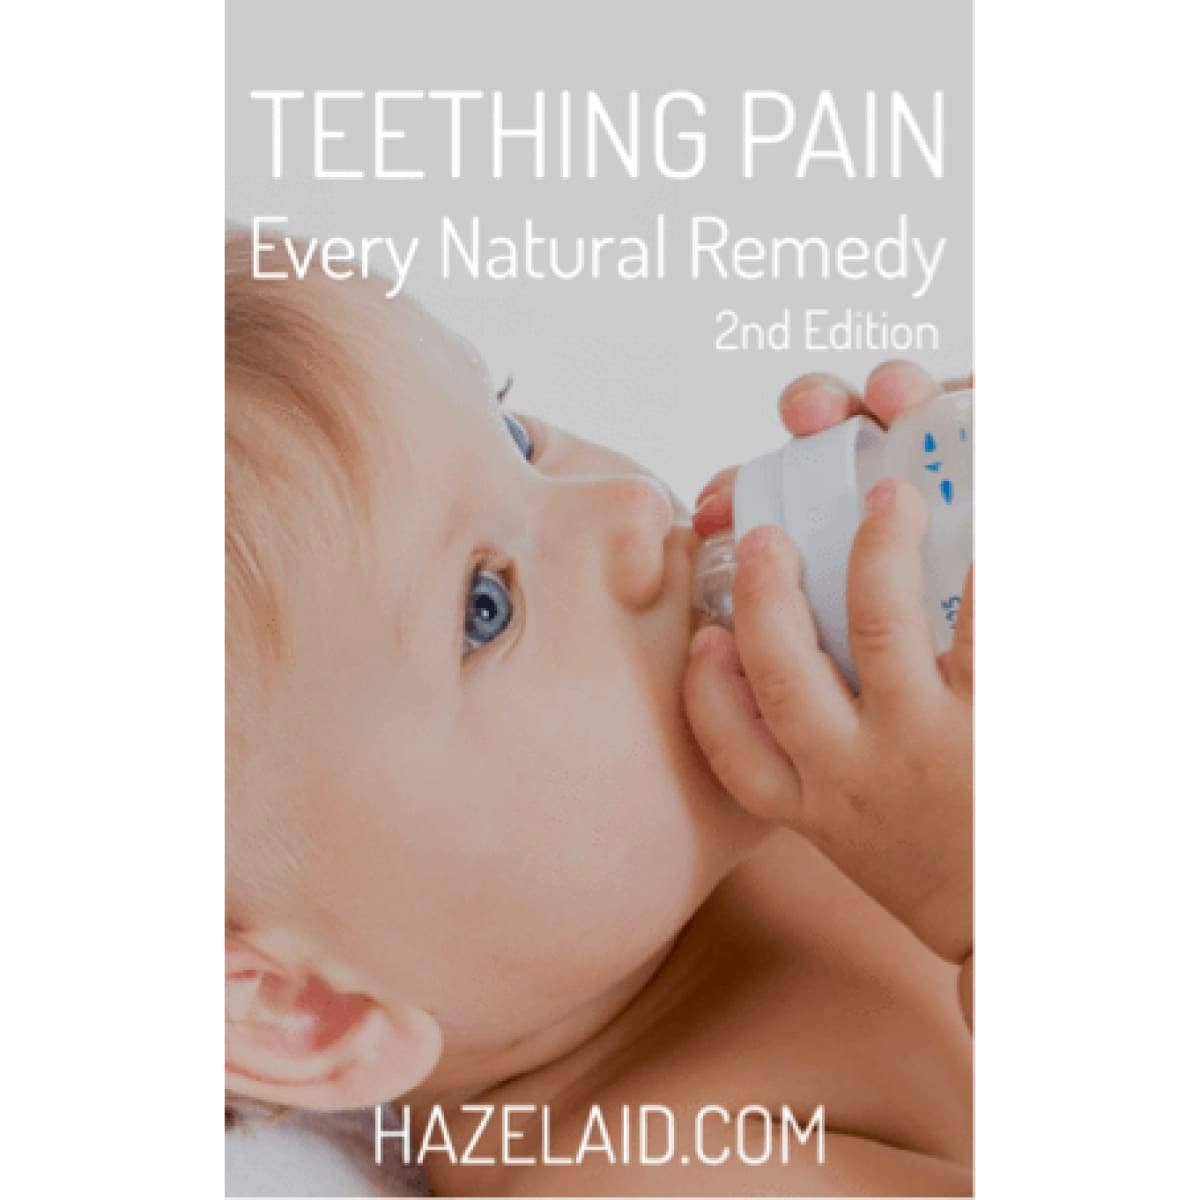 Teething Pain - Every Natural Remedy - 2Nd Edition - Ebook